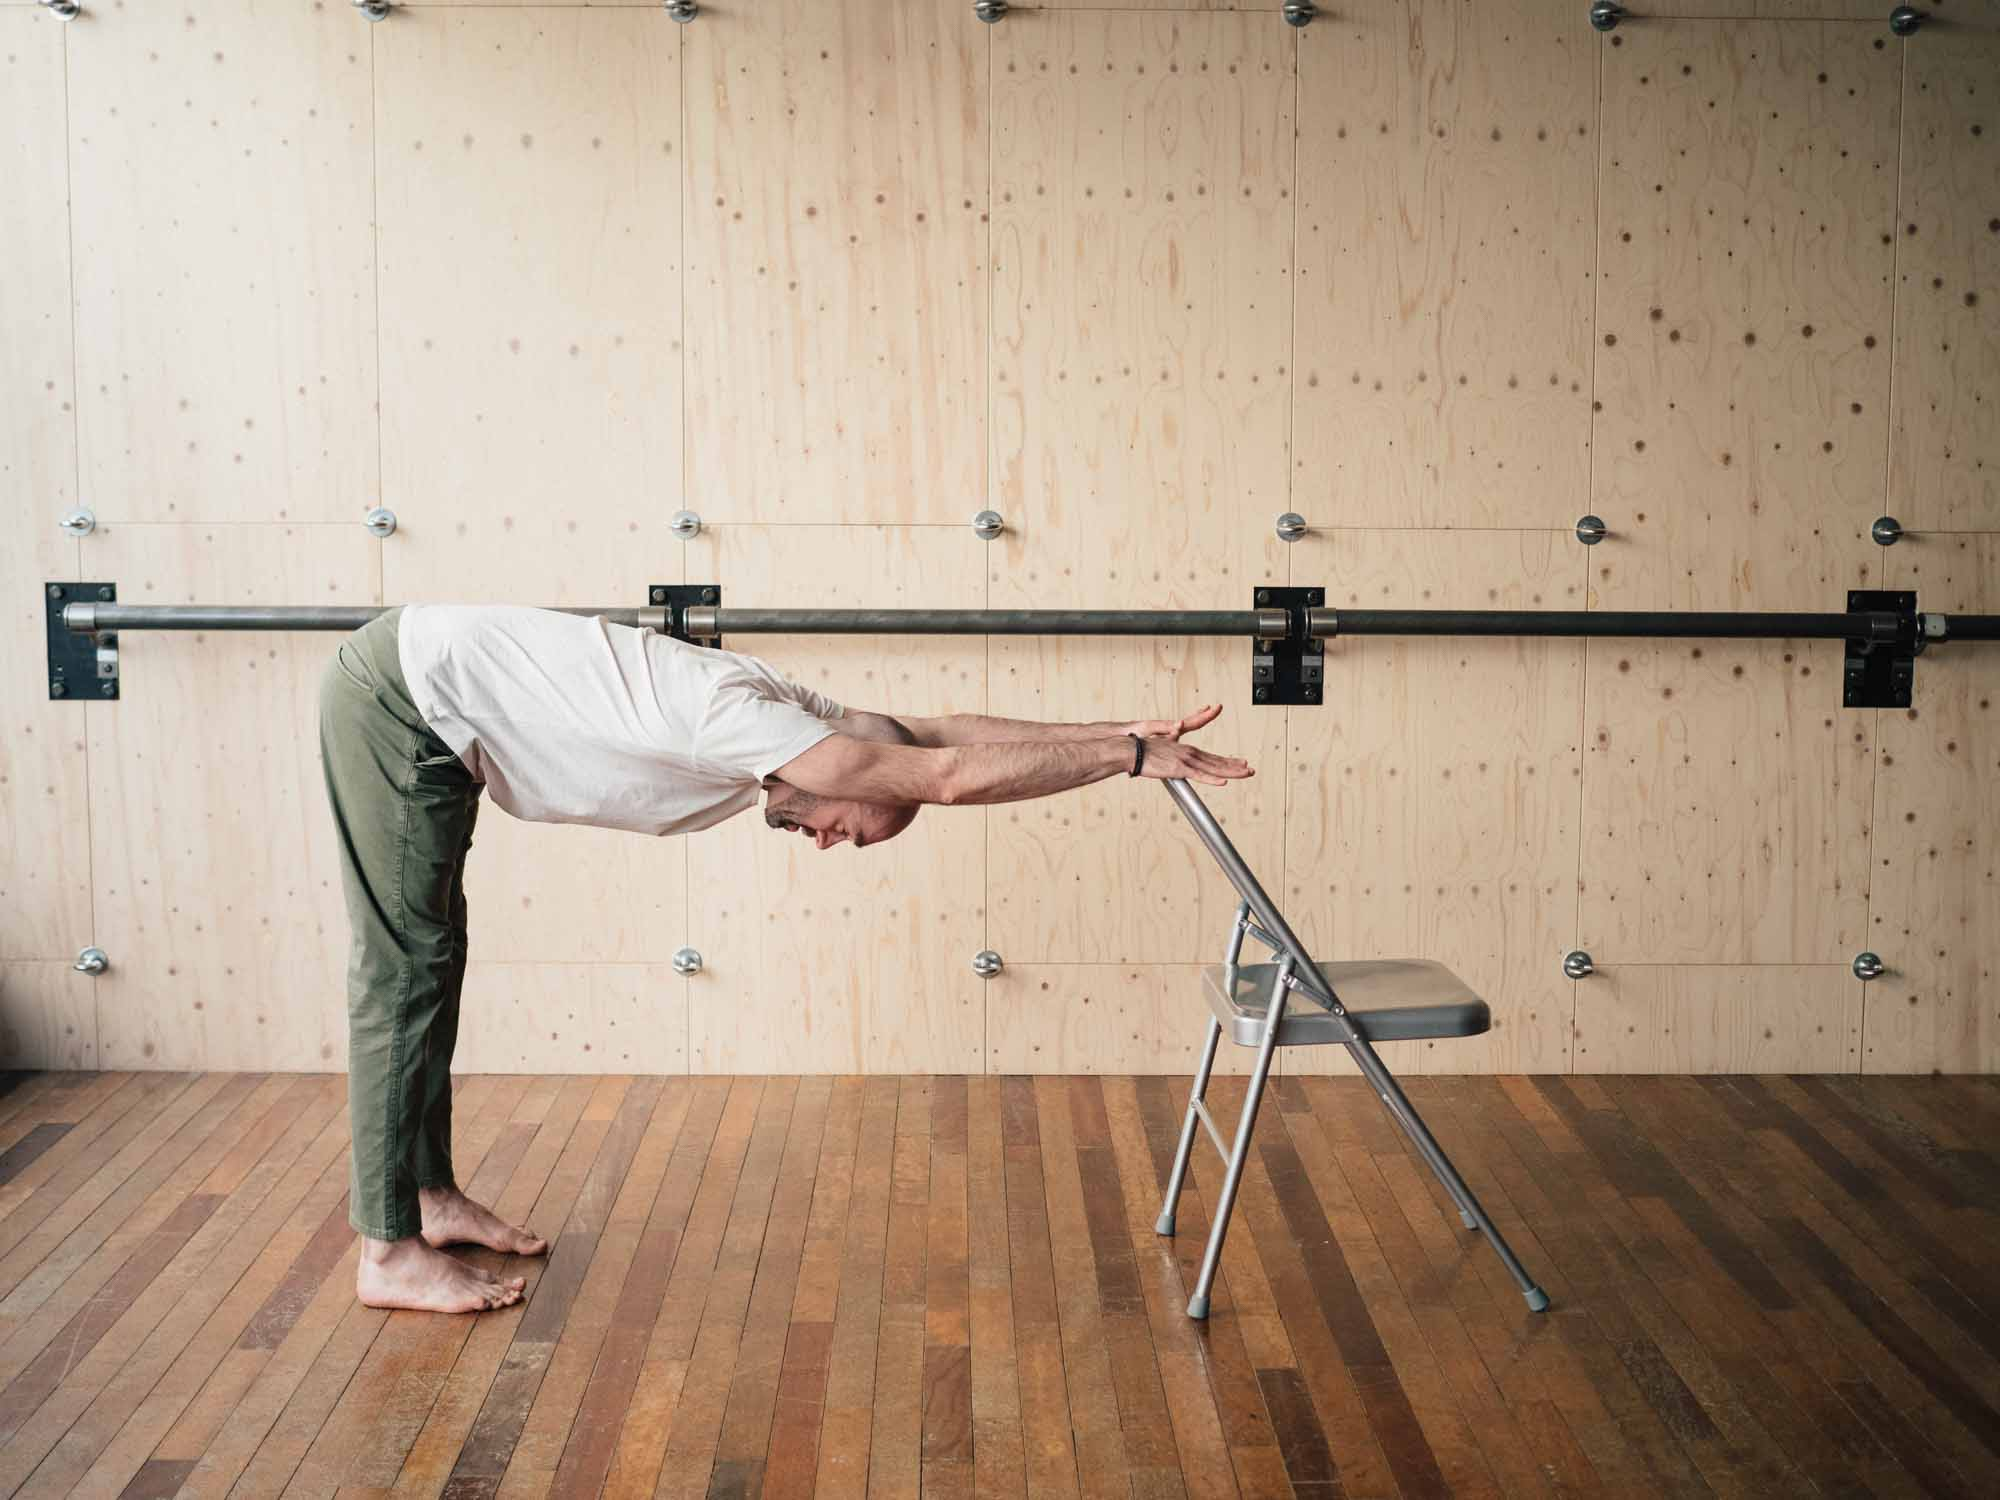 Man doing modified downward dog yoga pose on an office chair in a yoga studio